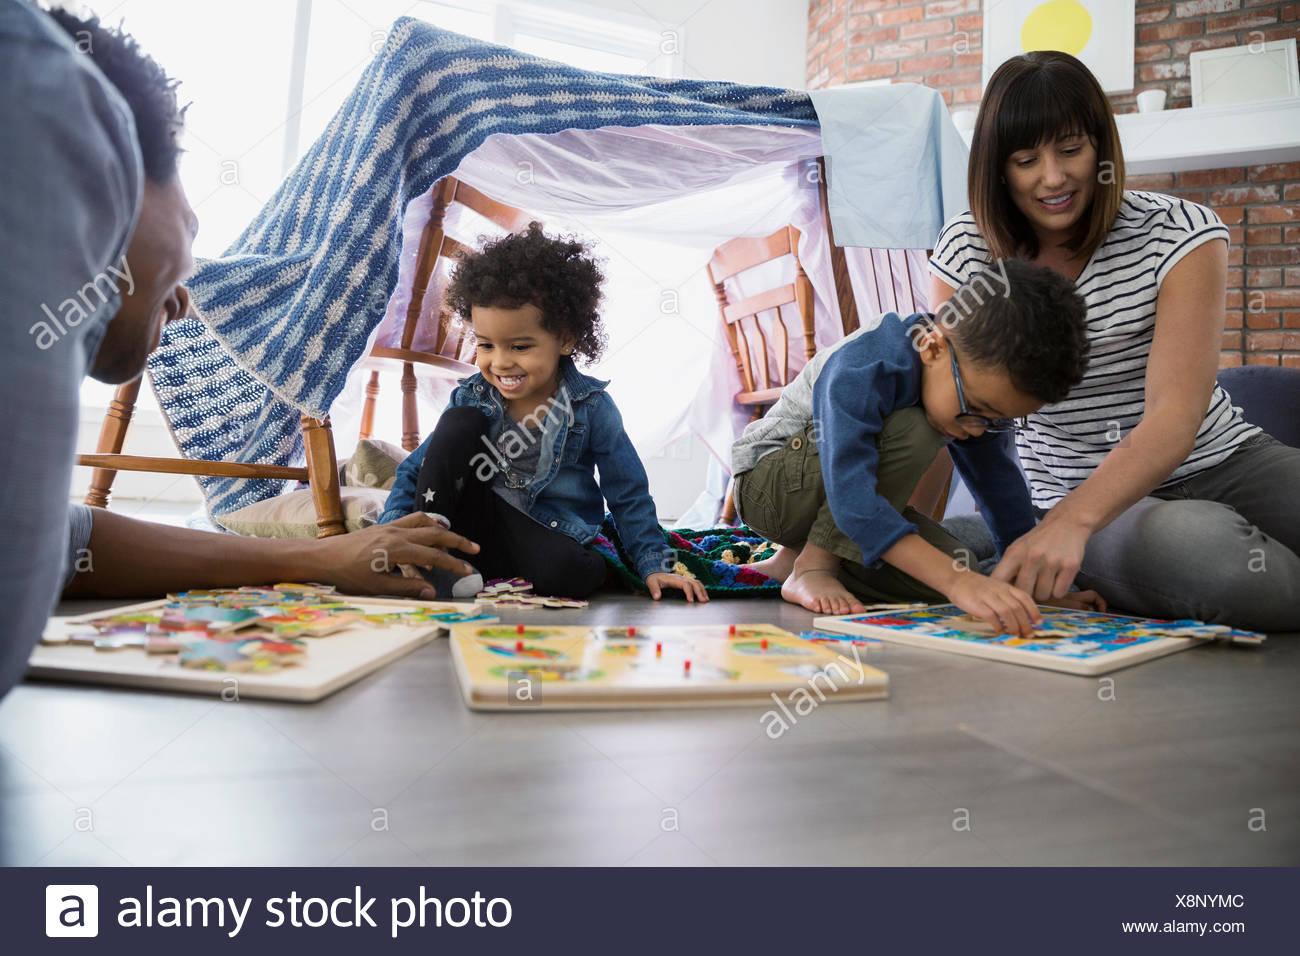 Family Playing with Jigsaw puzzles sur marbre Photo Stock